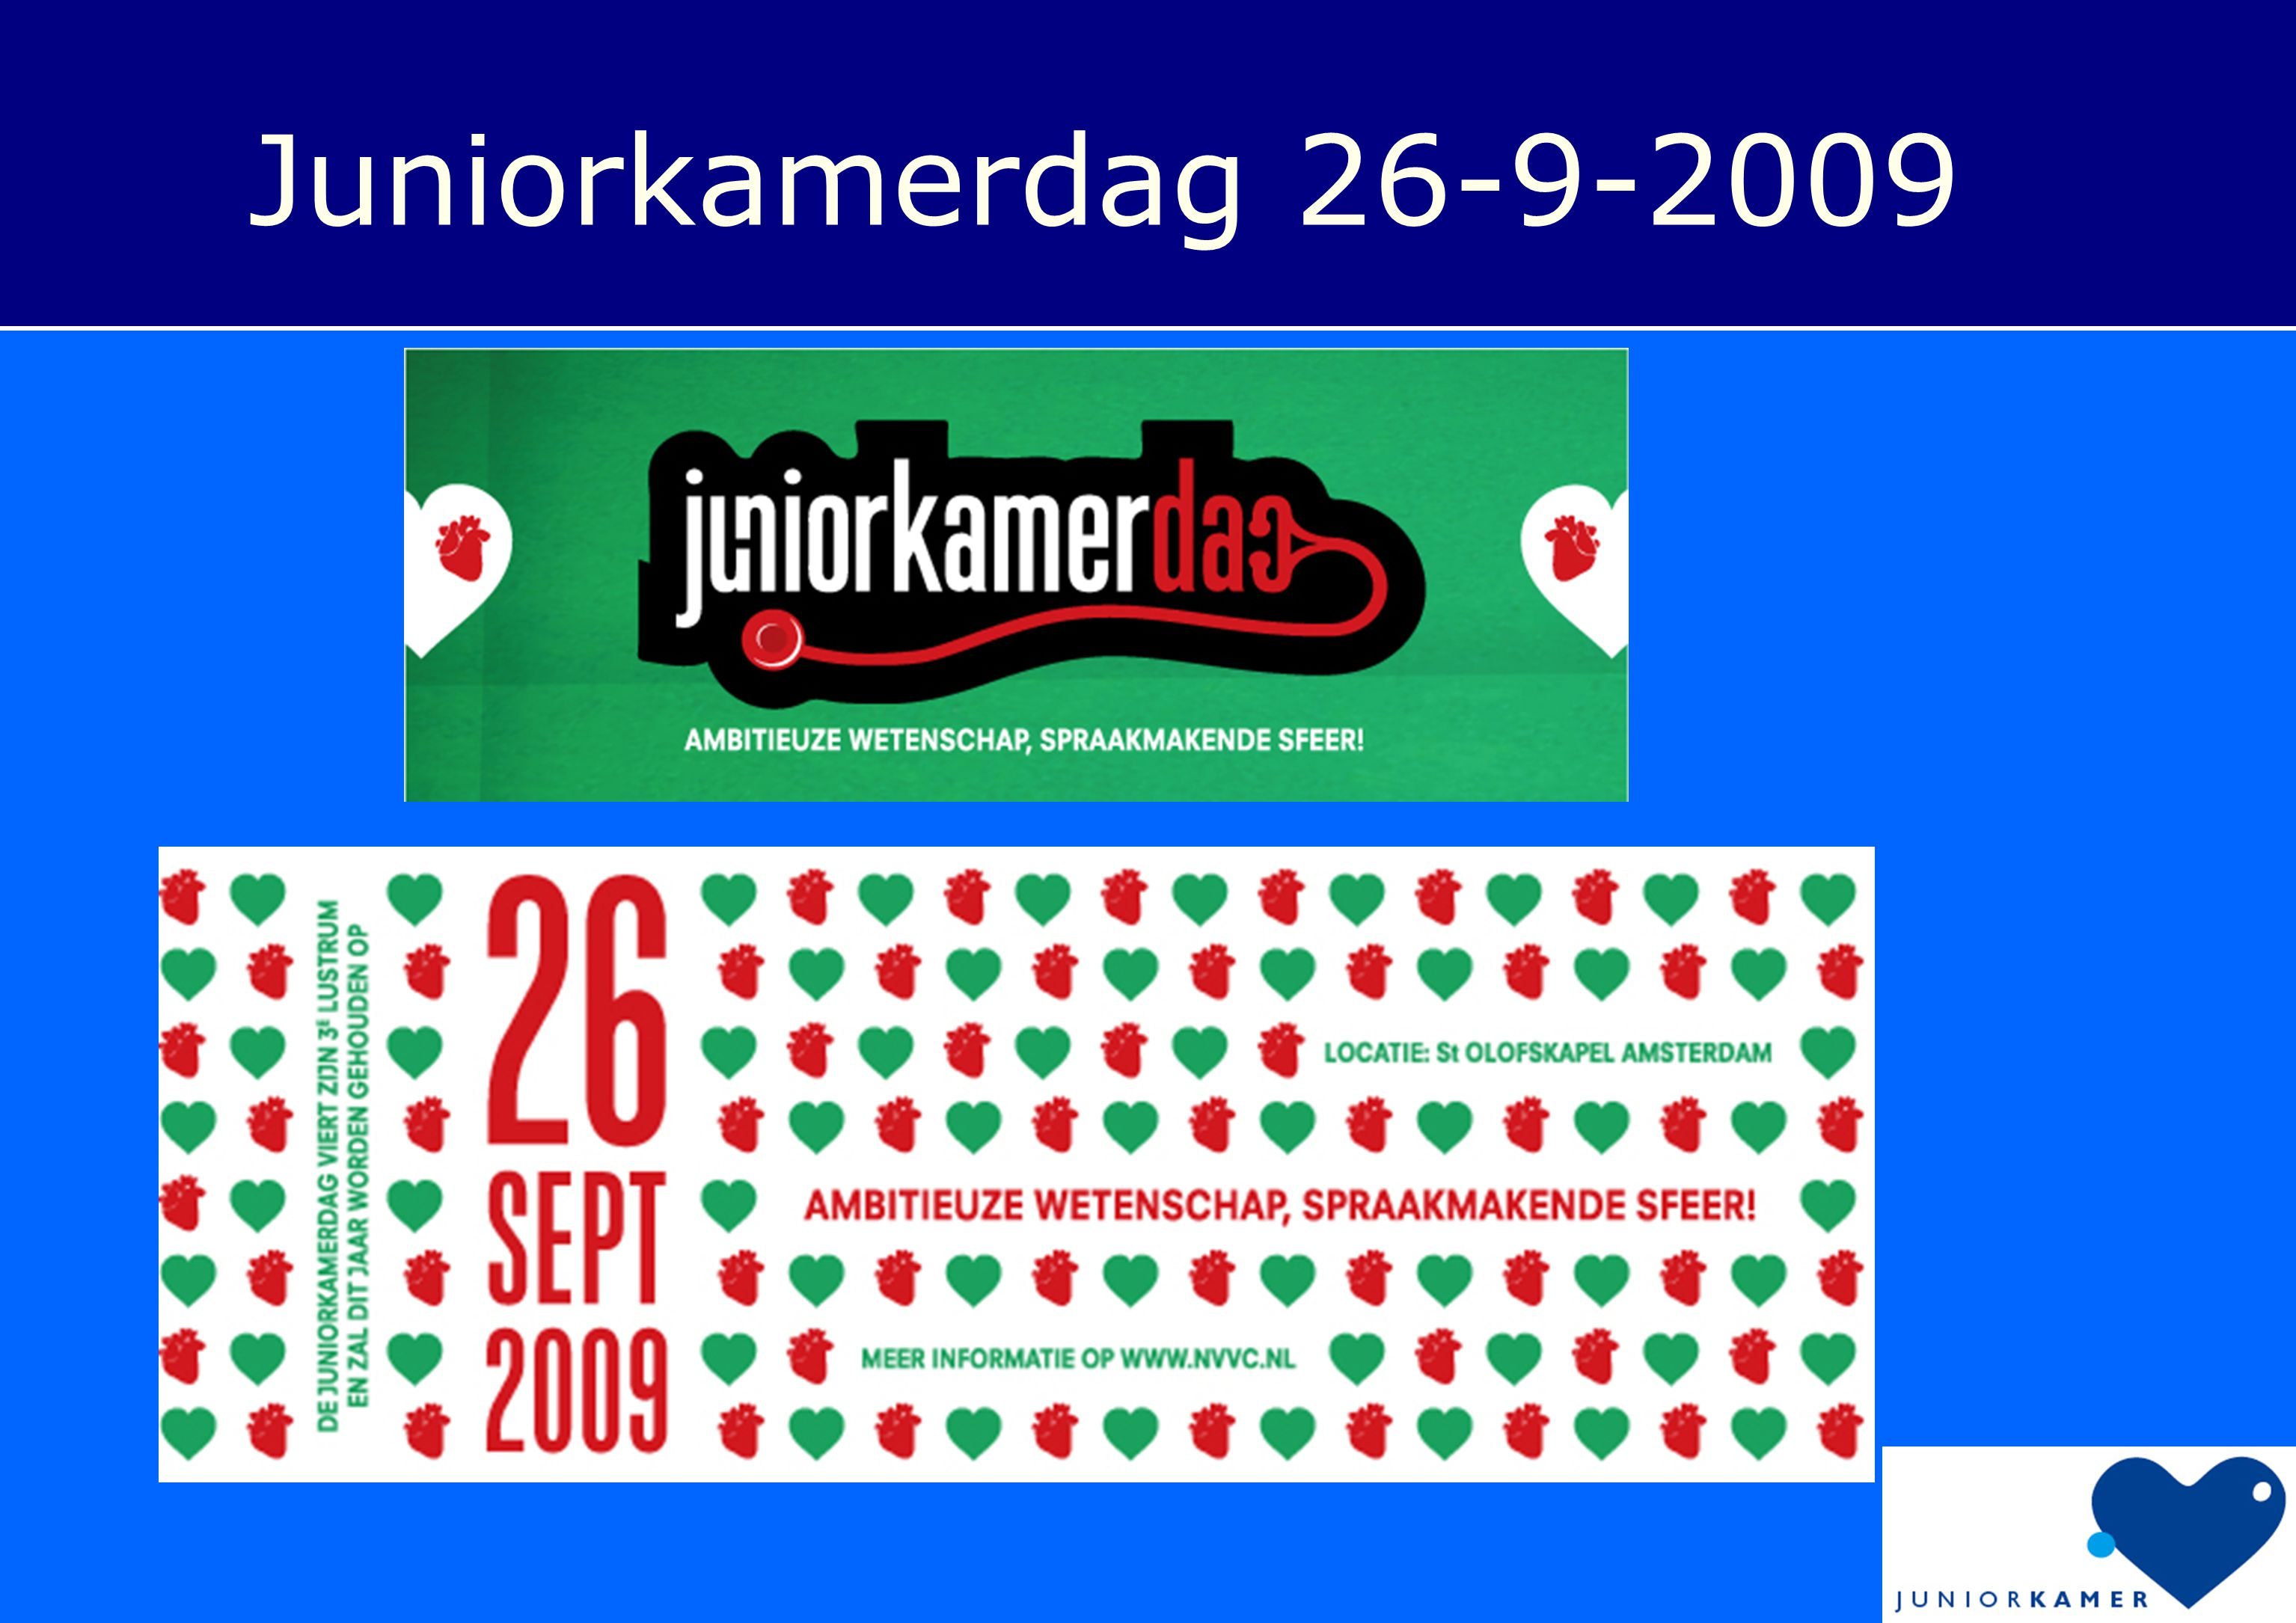 Juniorkamerdag 26-9-2009 25